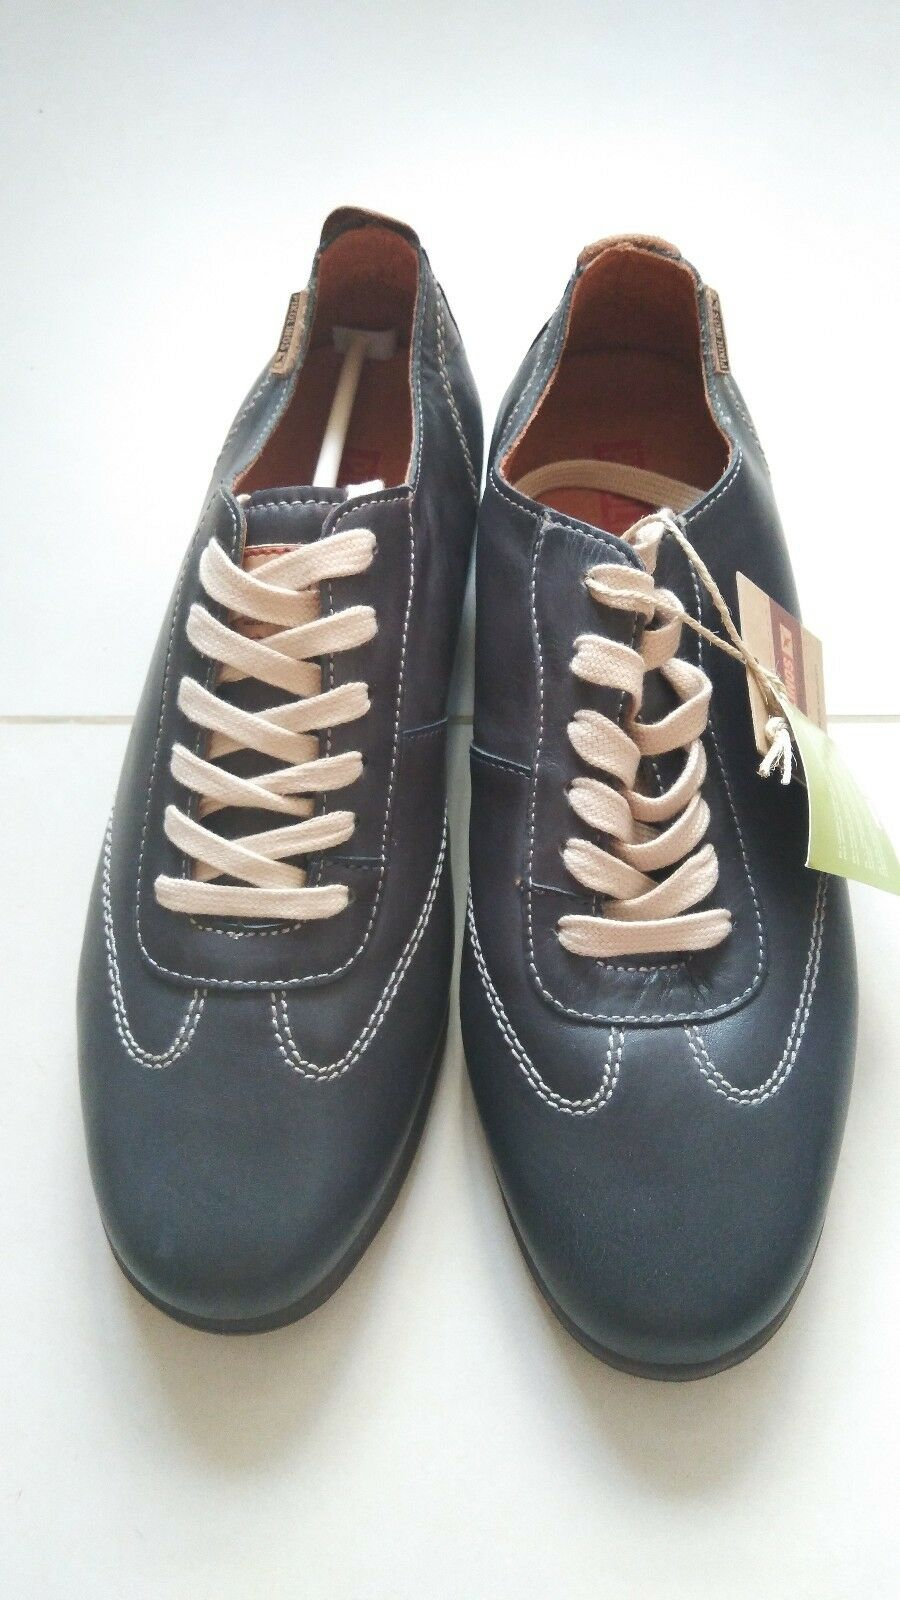 Pikolinos Mens Mackay Leather Sneakers shoes EU Size 40 US Size 6.5 - 7